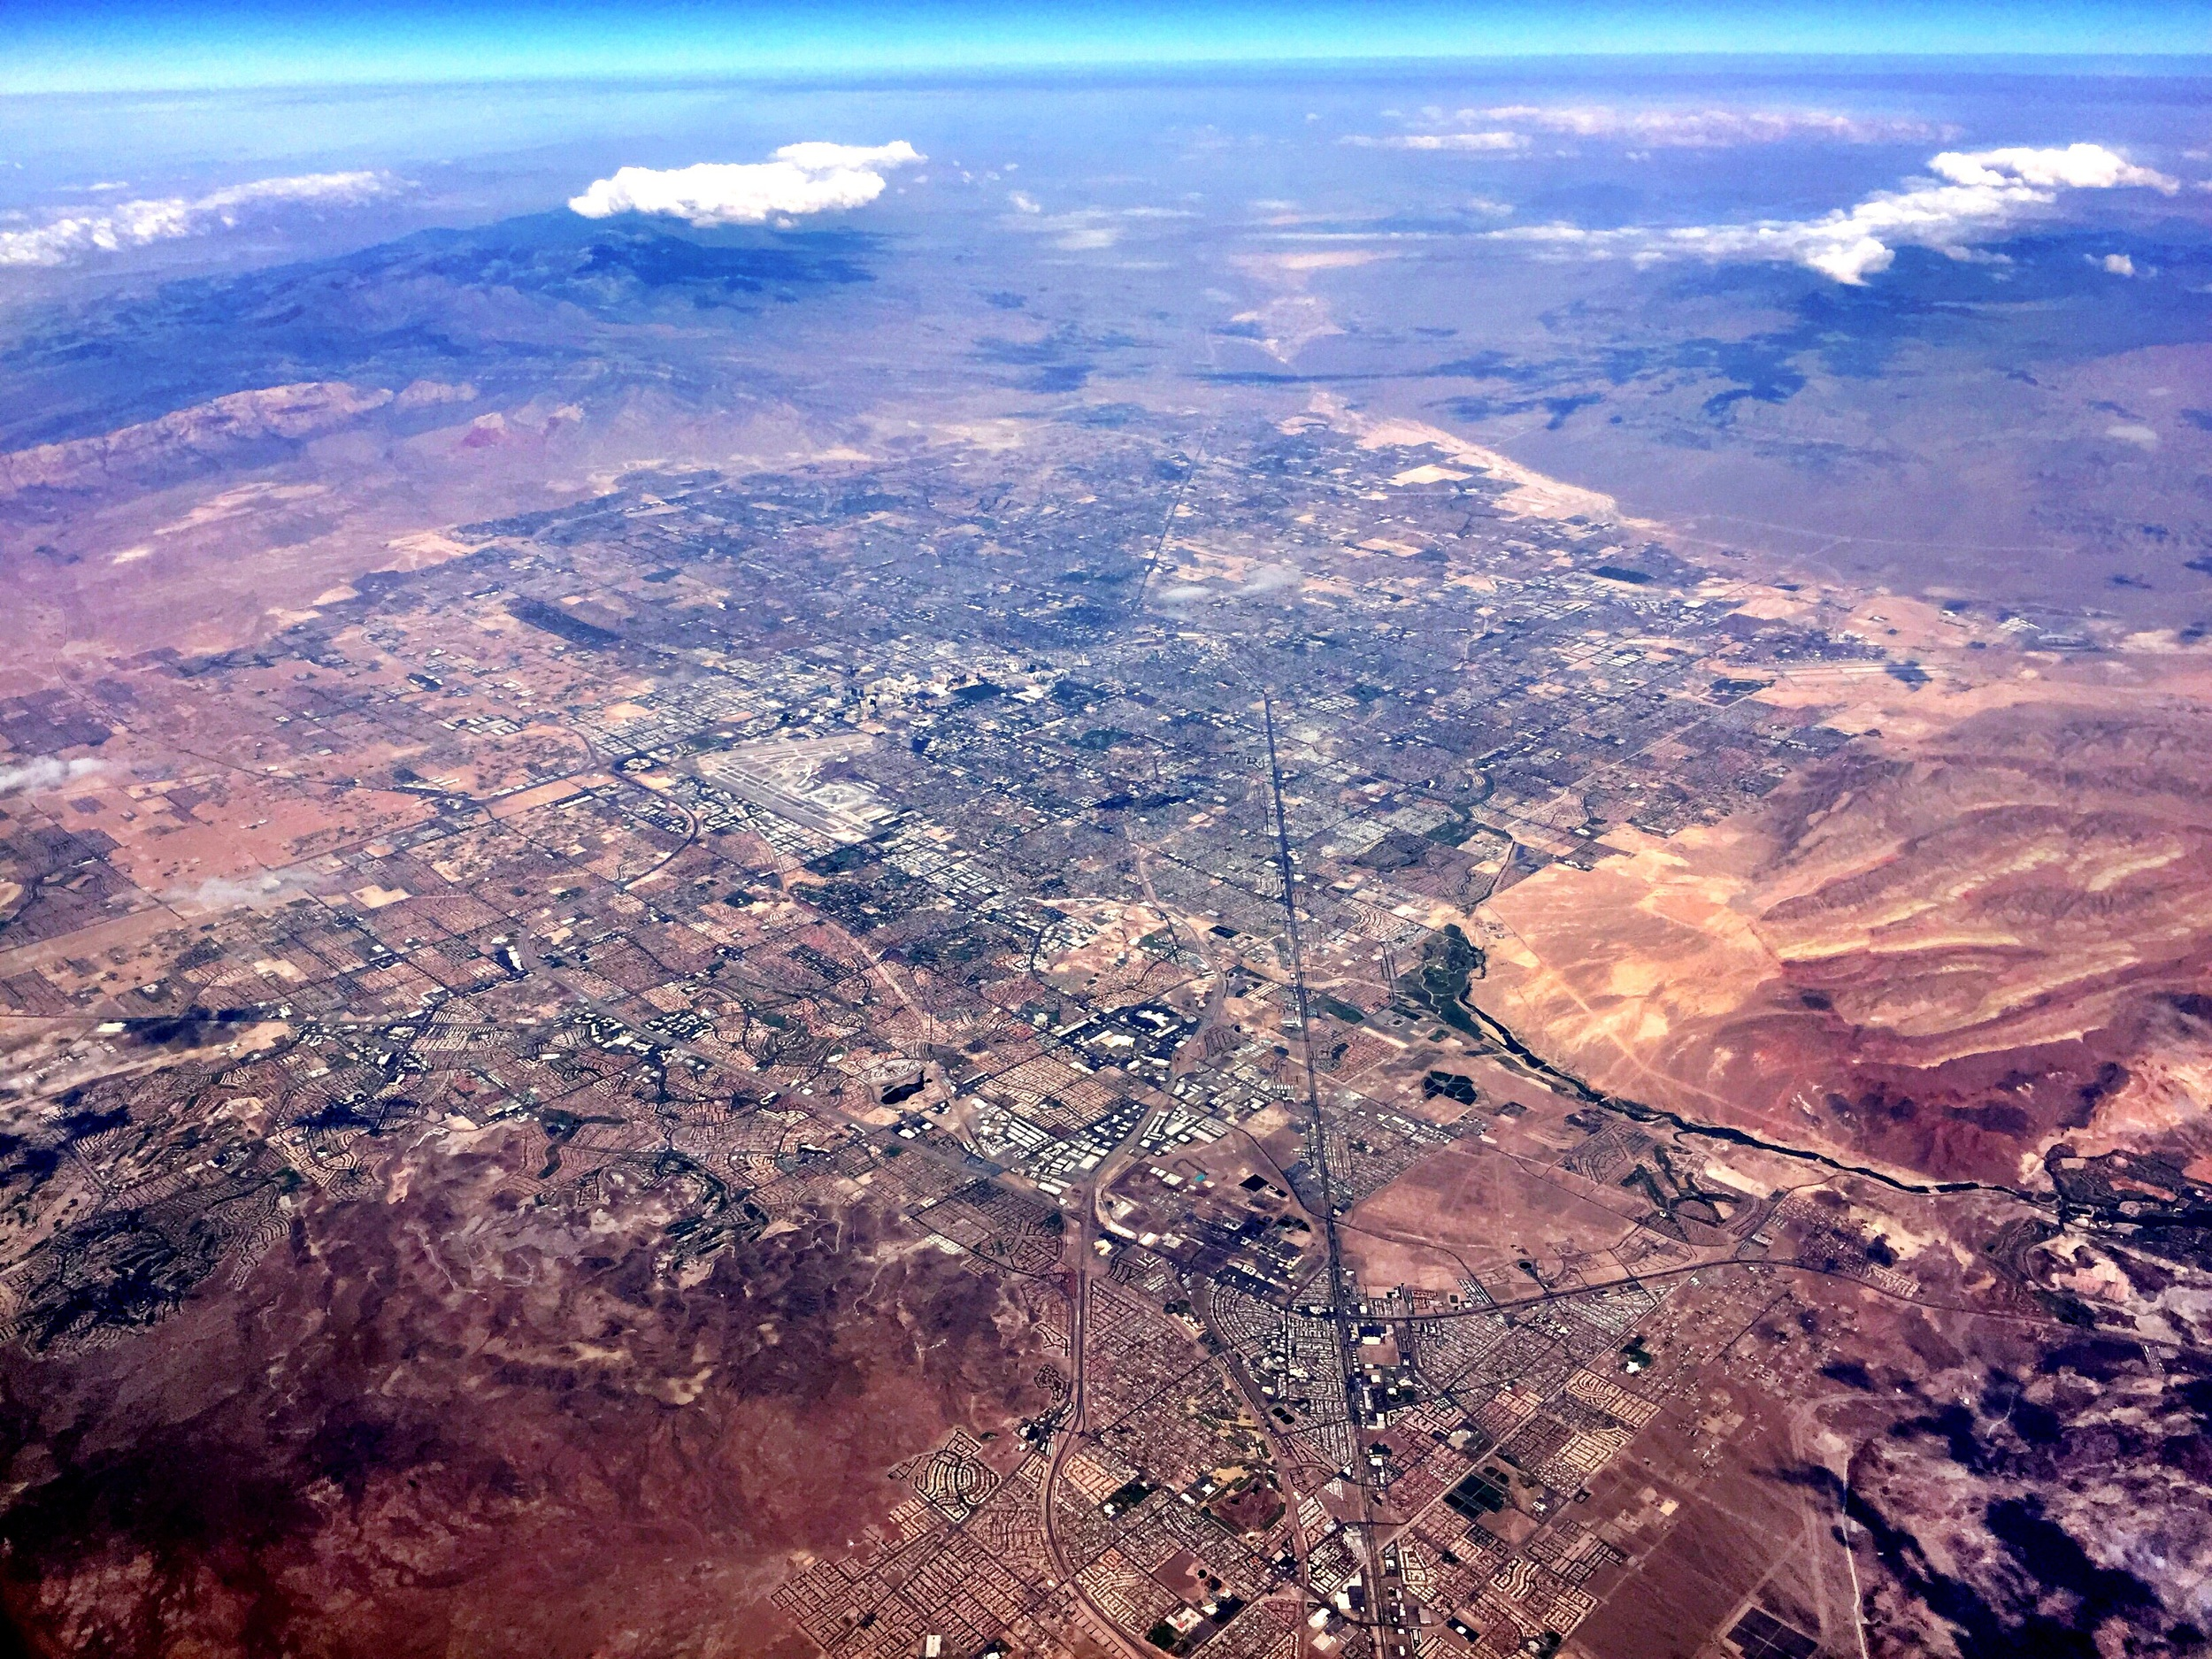 Over Boulder City, Nevada, with a view of Las Vegas at 1:30 PM.